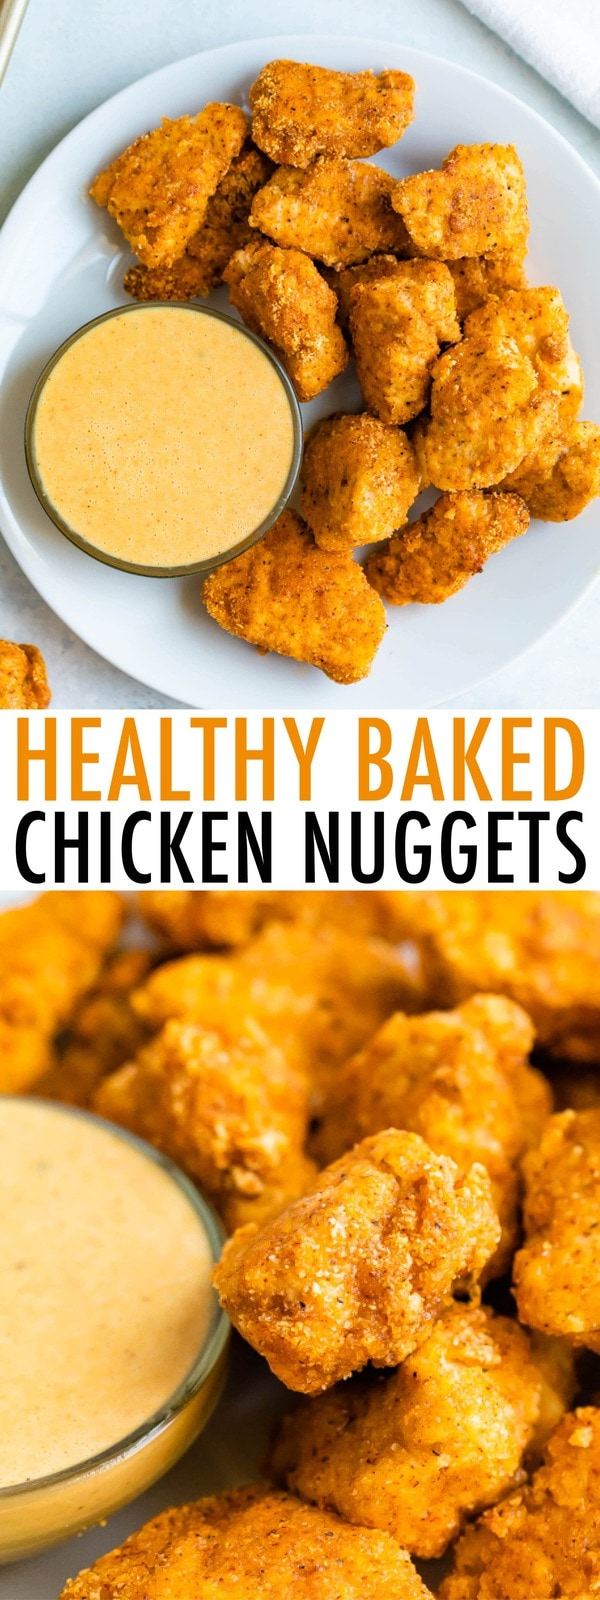 Healthy Baked Chicken Nuggets Eating Bird Food Recipe Healthy Baked Chicken Chicken Nugget Recipes Baked Chicken Nugget Recipes